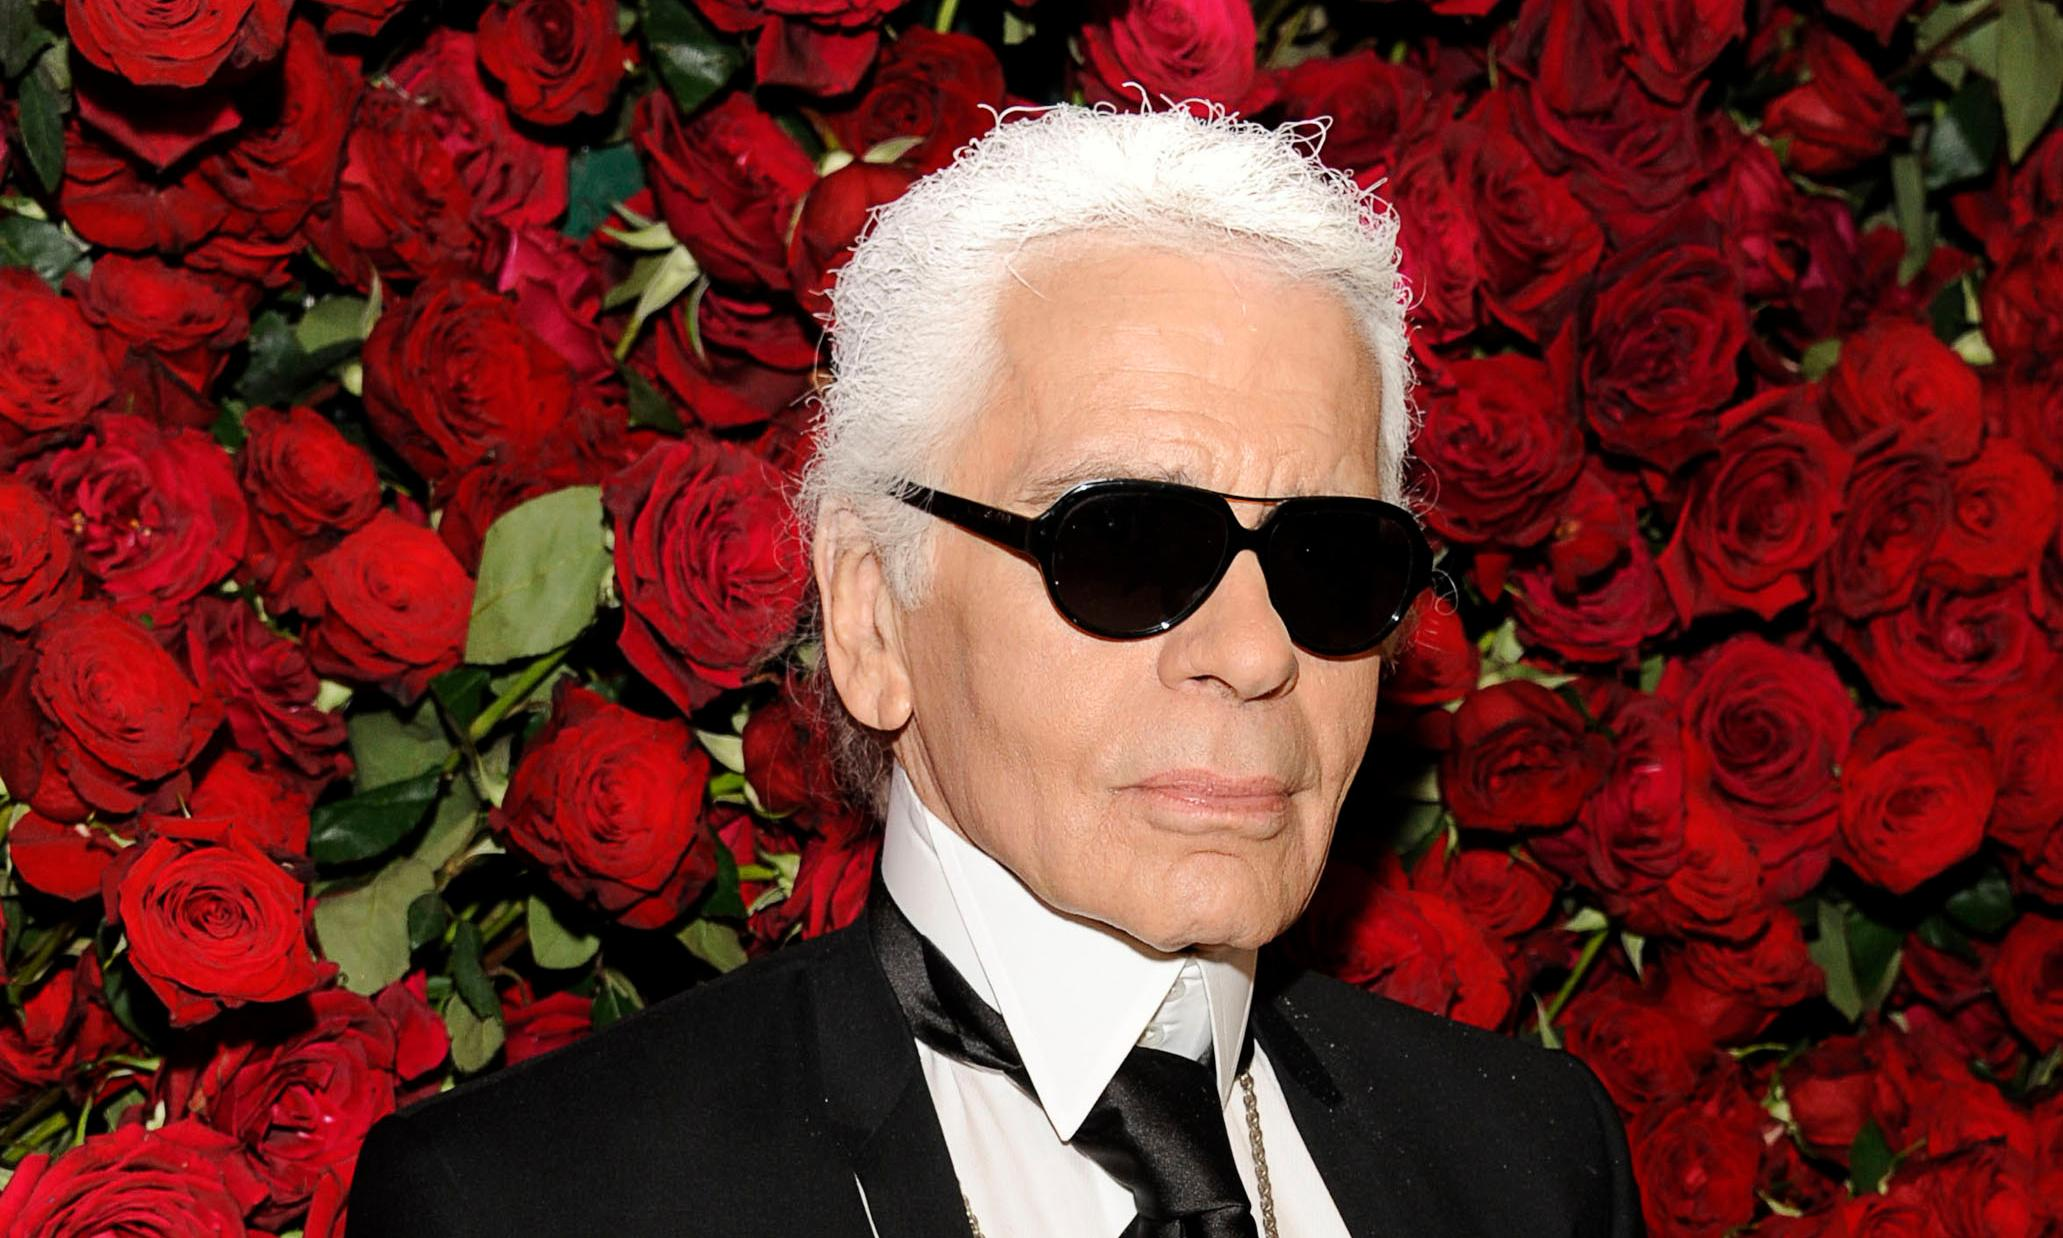 Karl Lagerfeld obituary